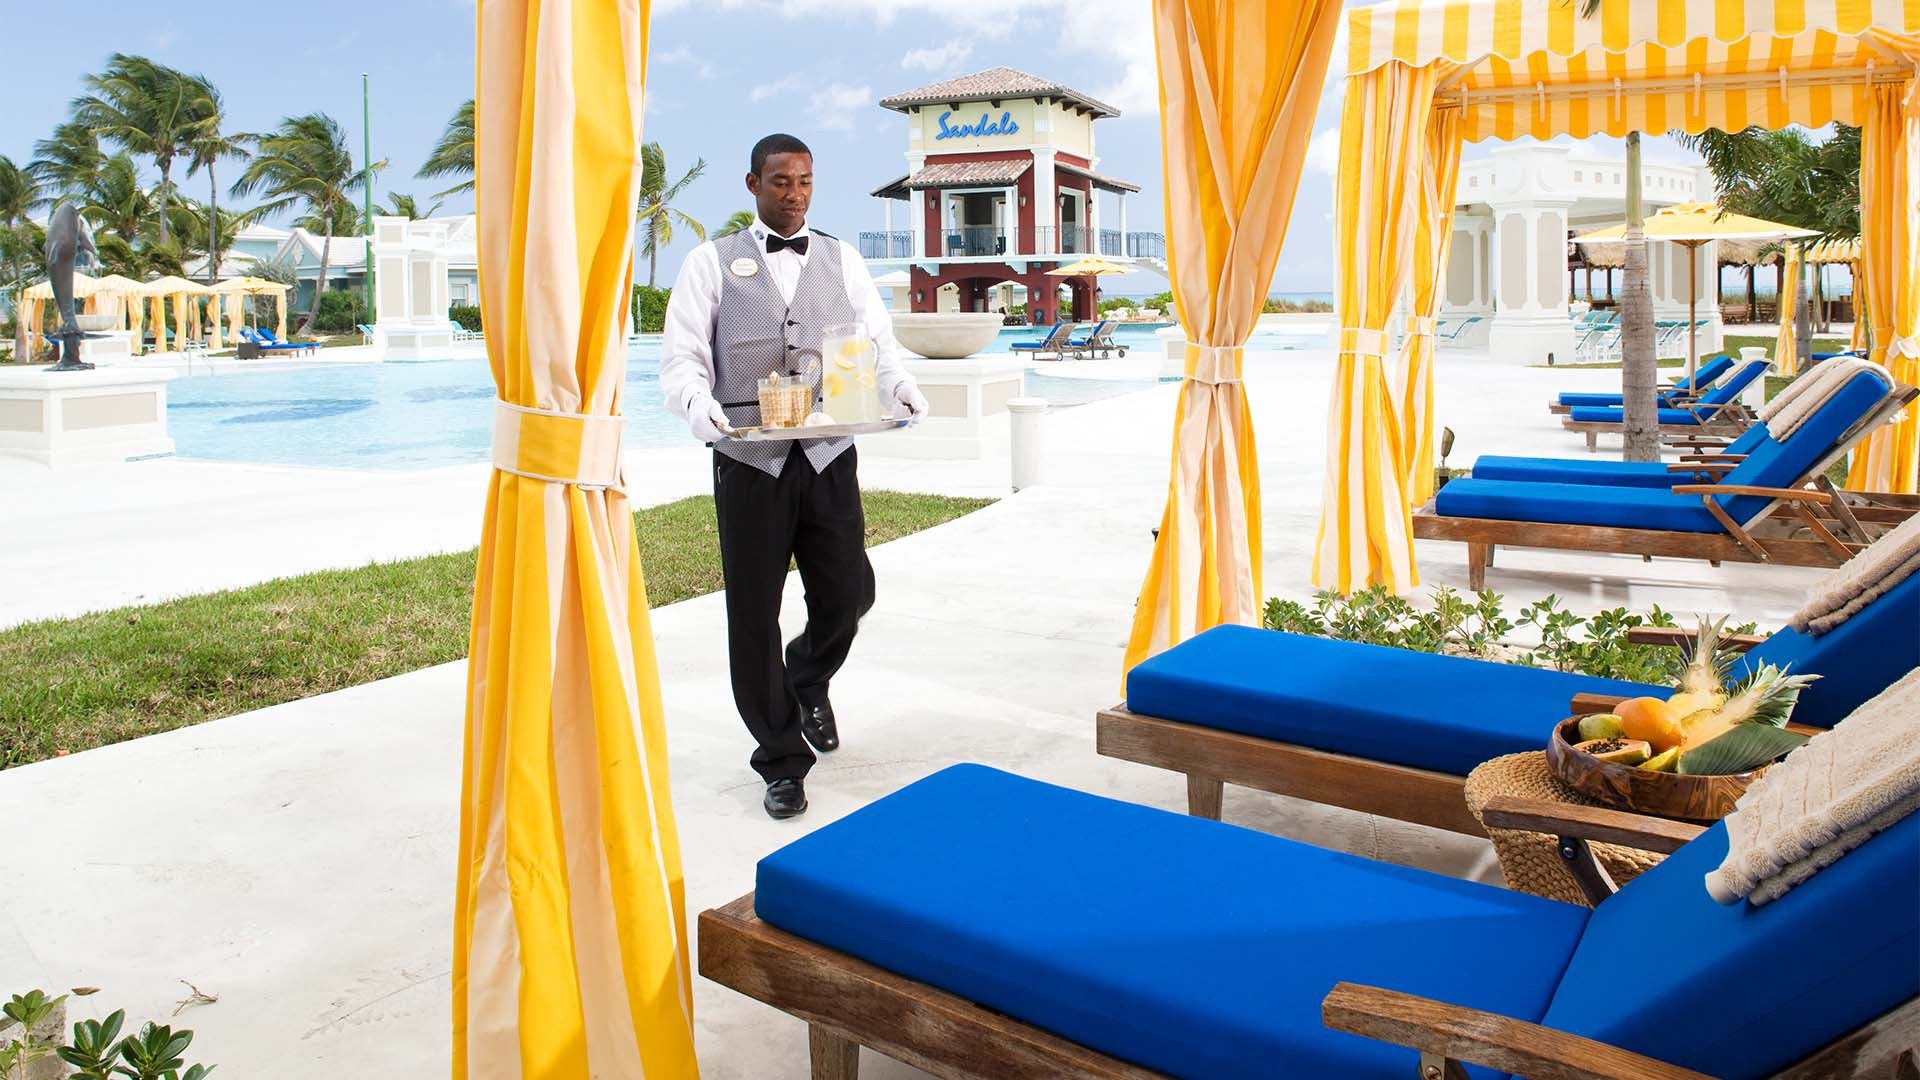 Butler service at Sandals Emerald Bay, The Bahamas